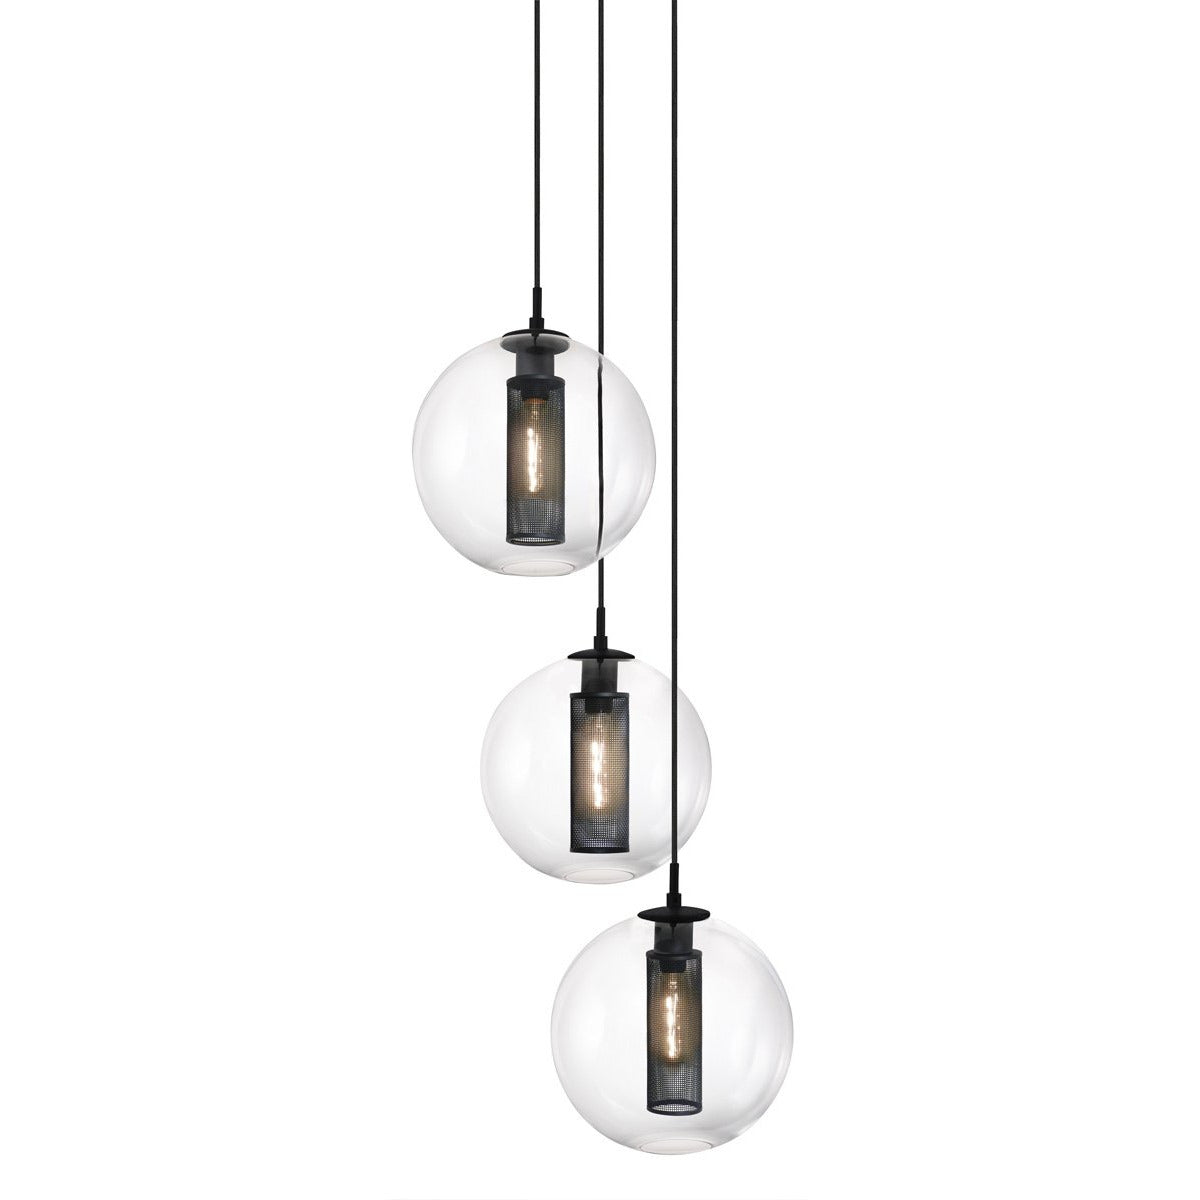 Sonneman - A Way of Light - 4935.97 - Three Light Pendant - Tribeca - Textured Black